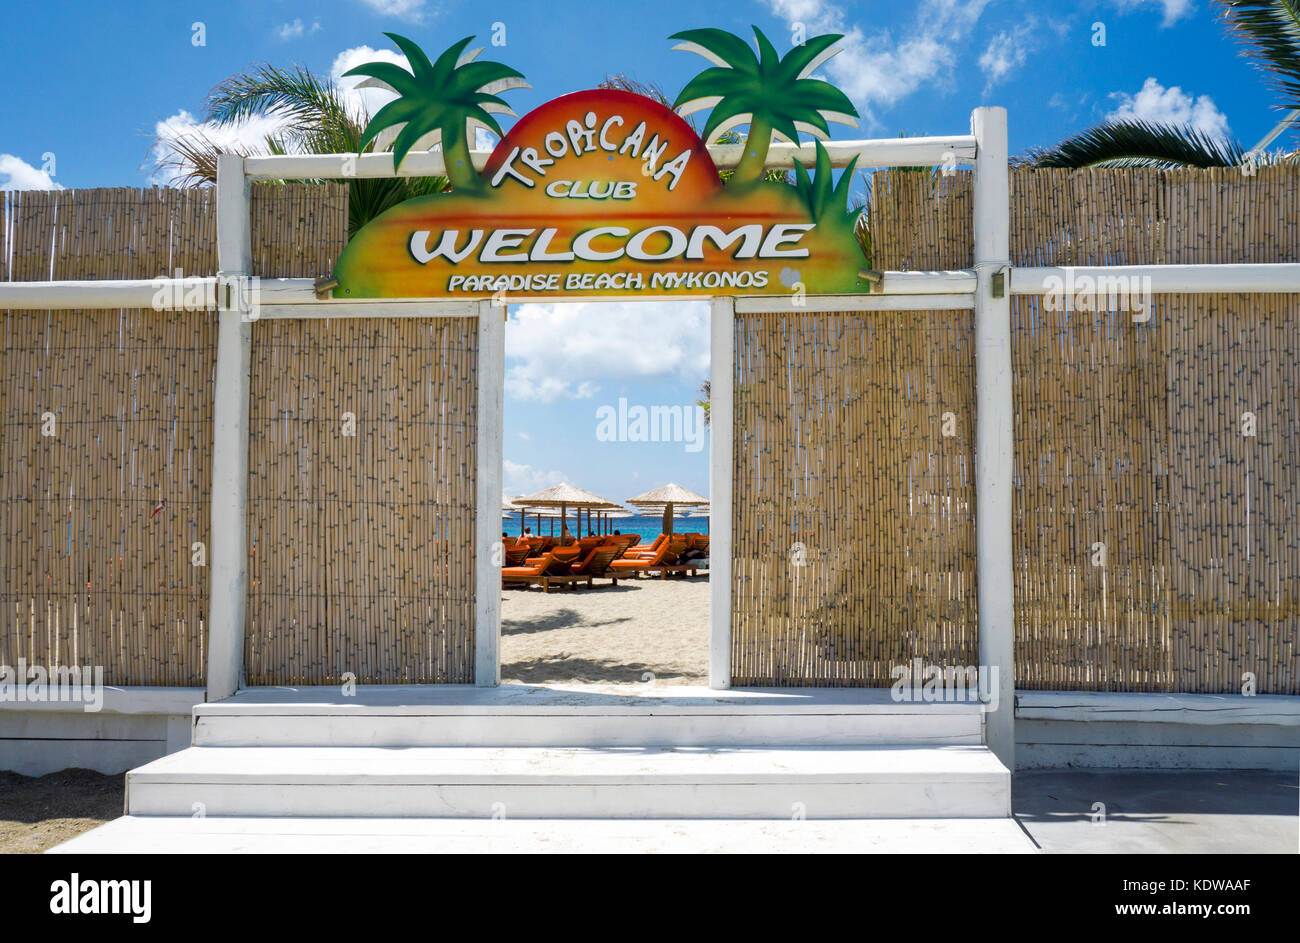 Entrance to Paradise beach, Mykonos - Stock Image